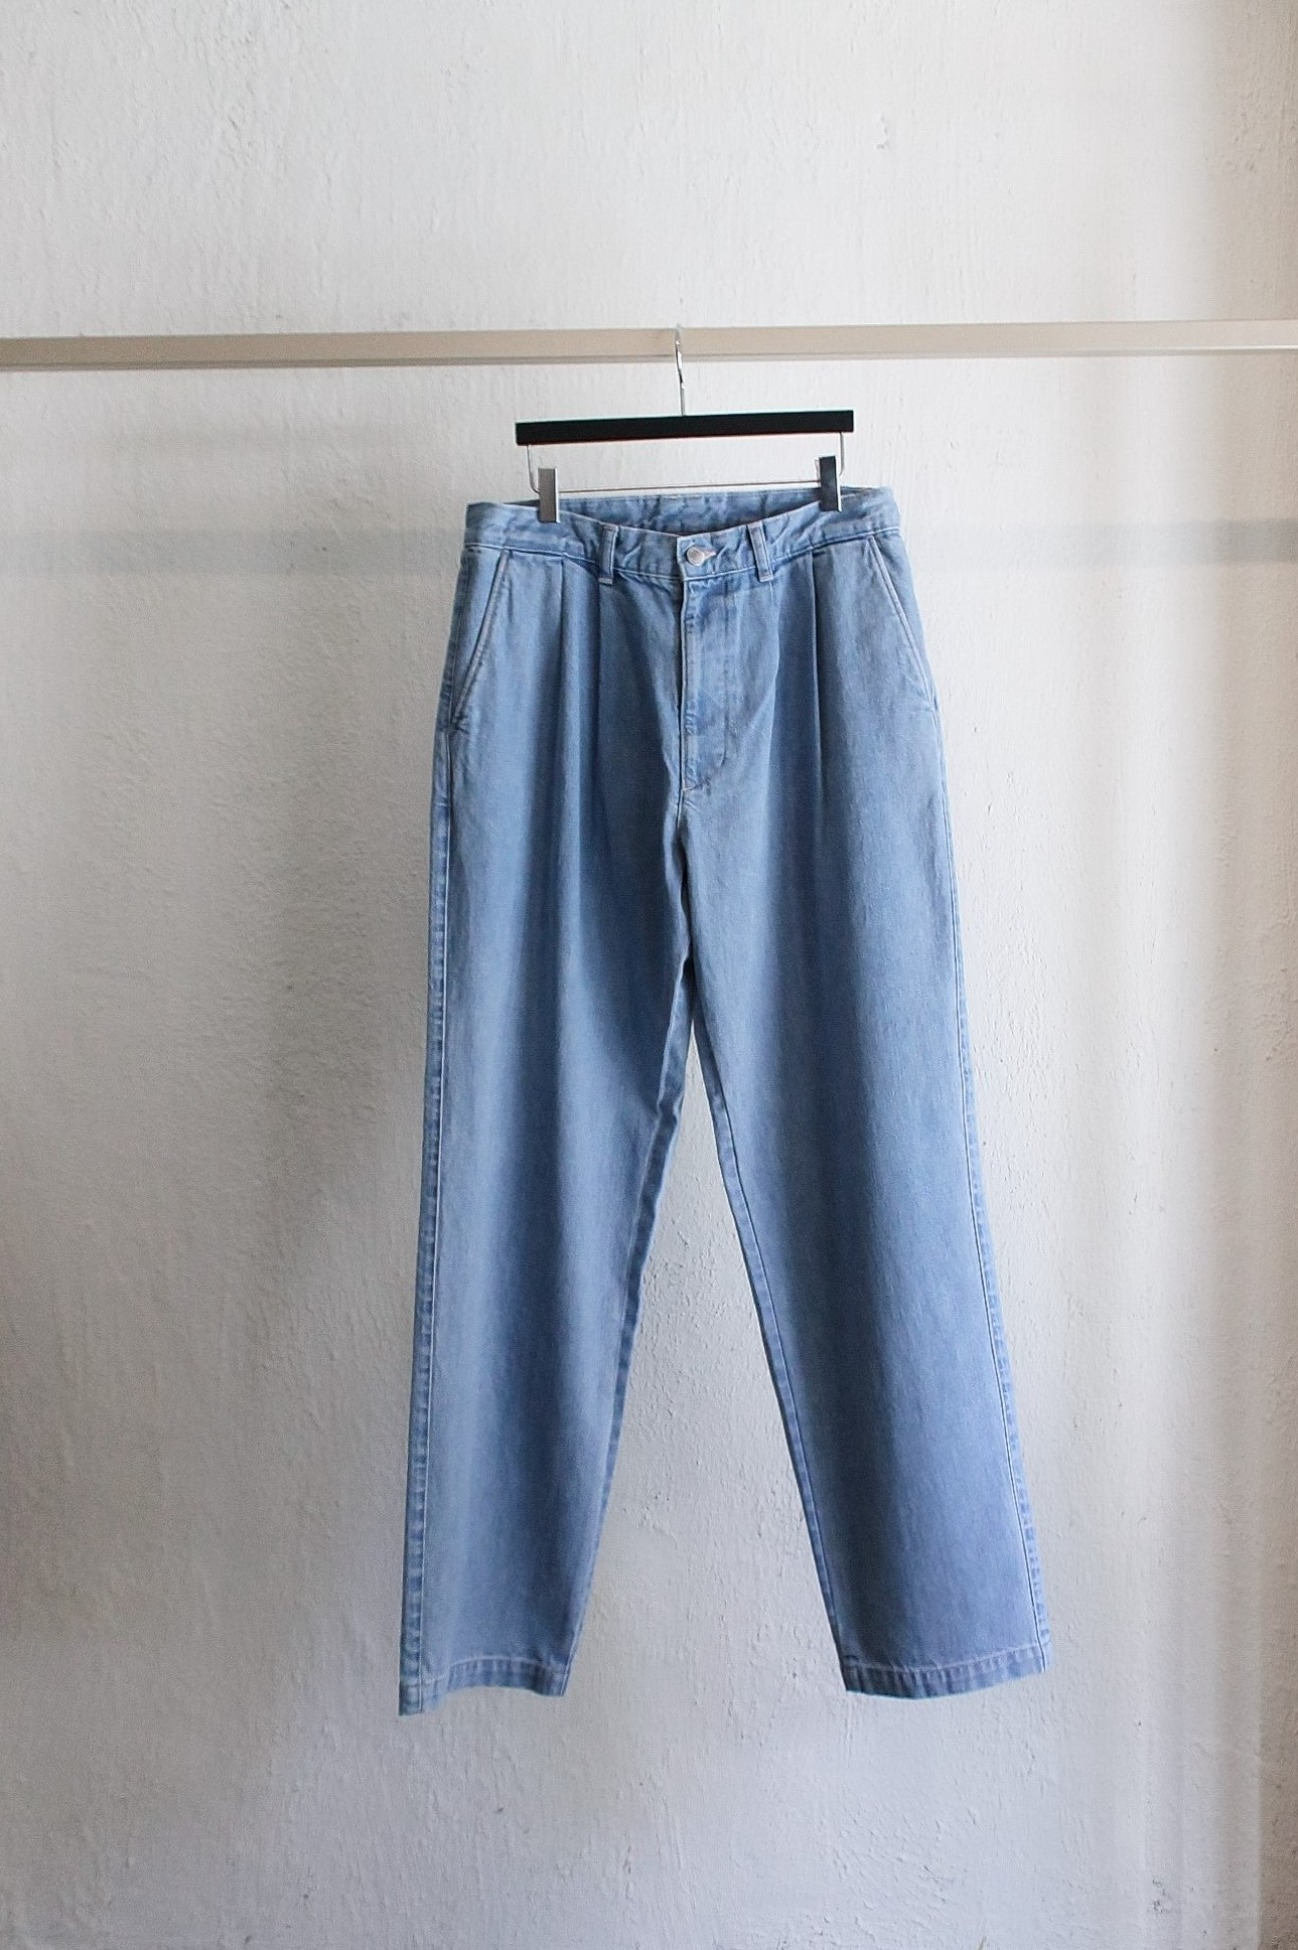 [E.TAUTZ] Pleated Jeans – Heavy Wash Denim